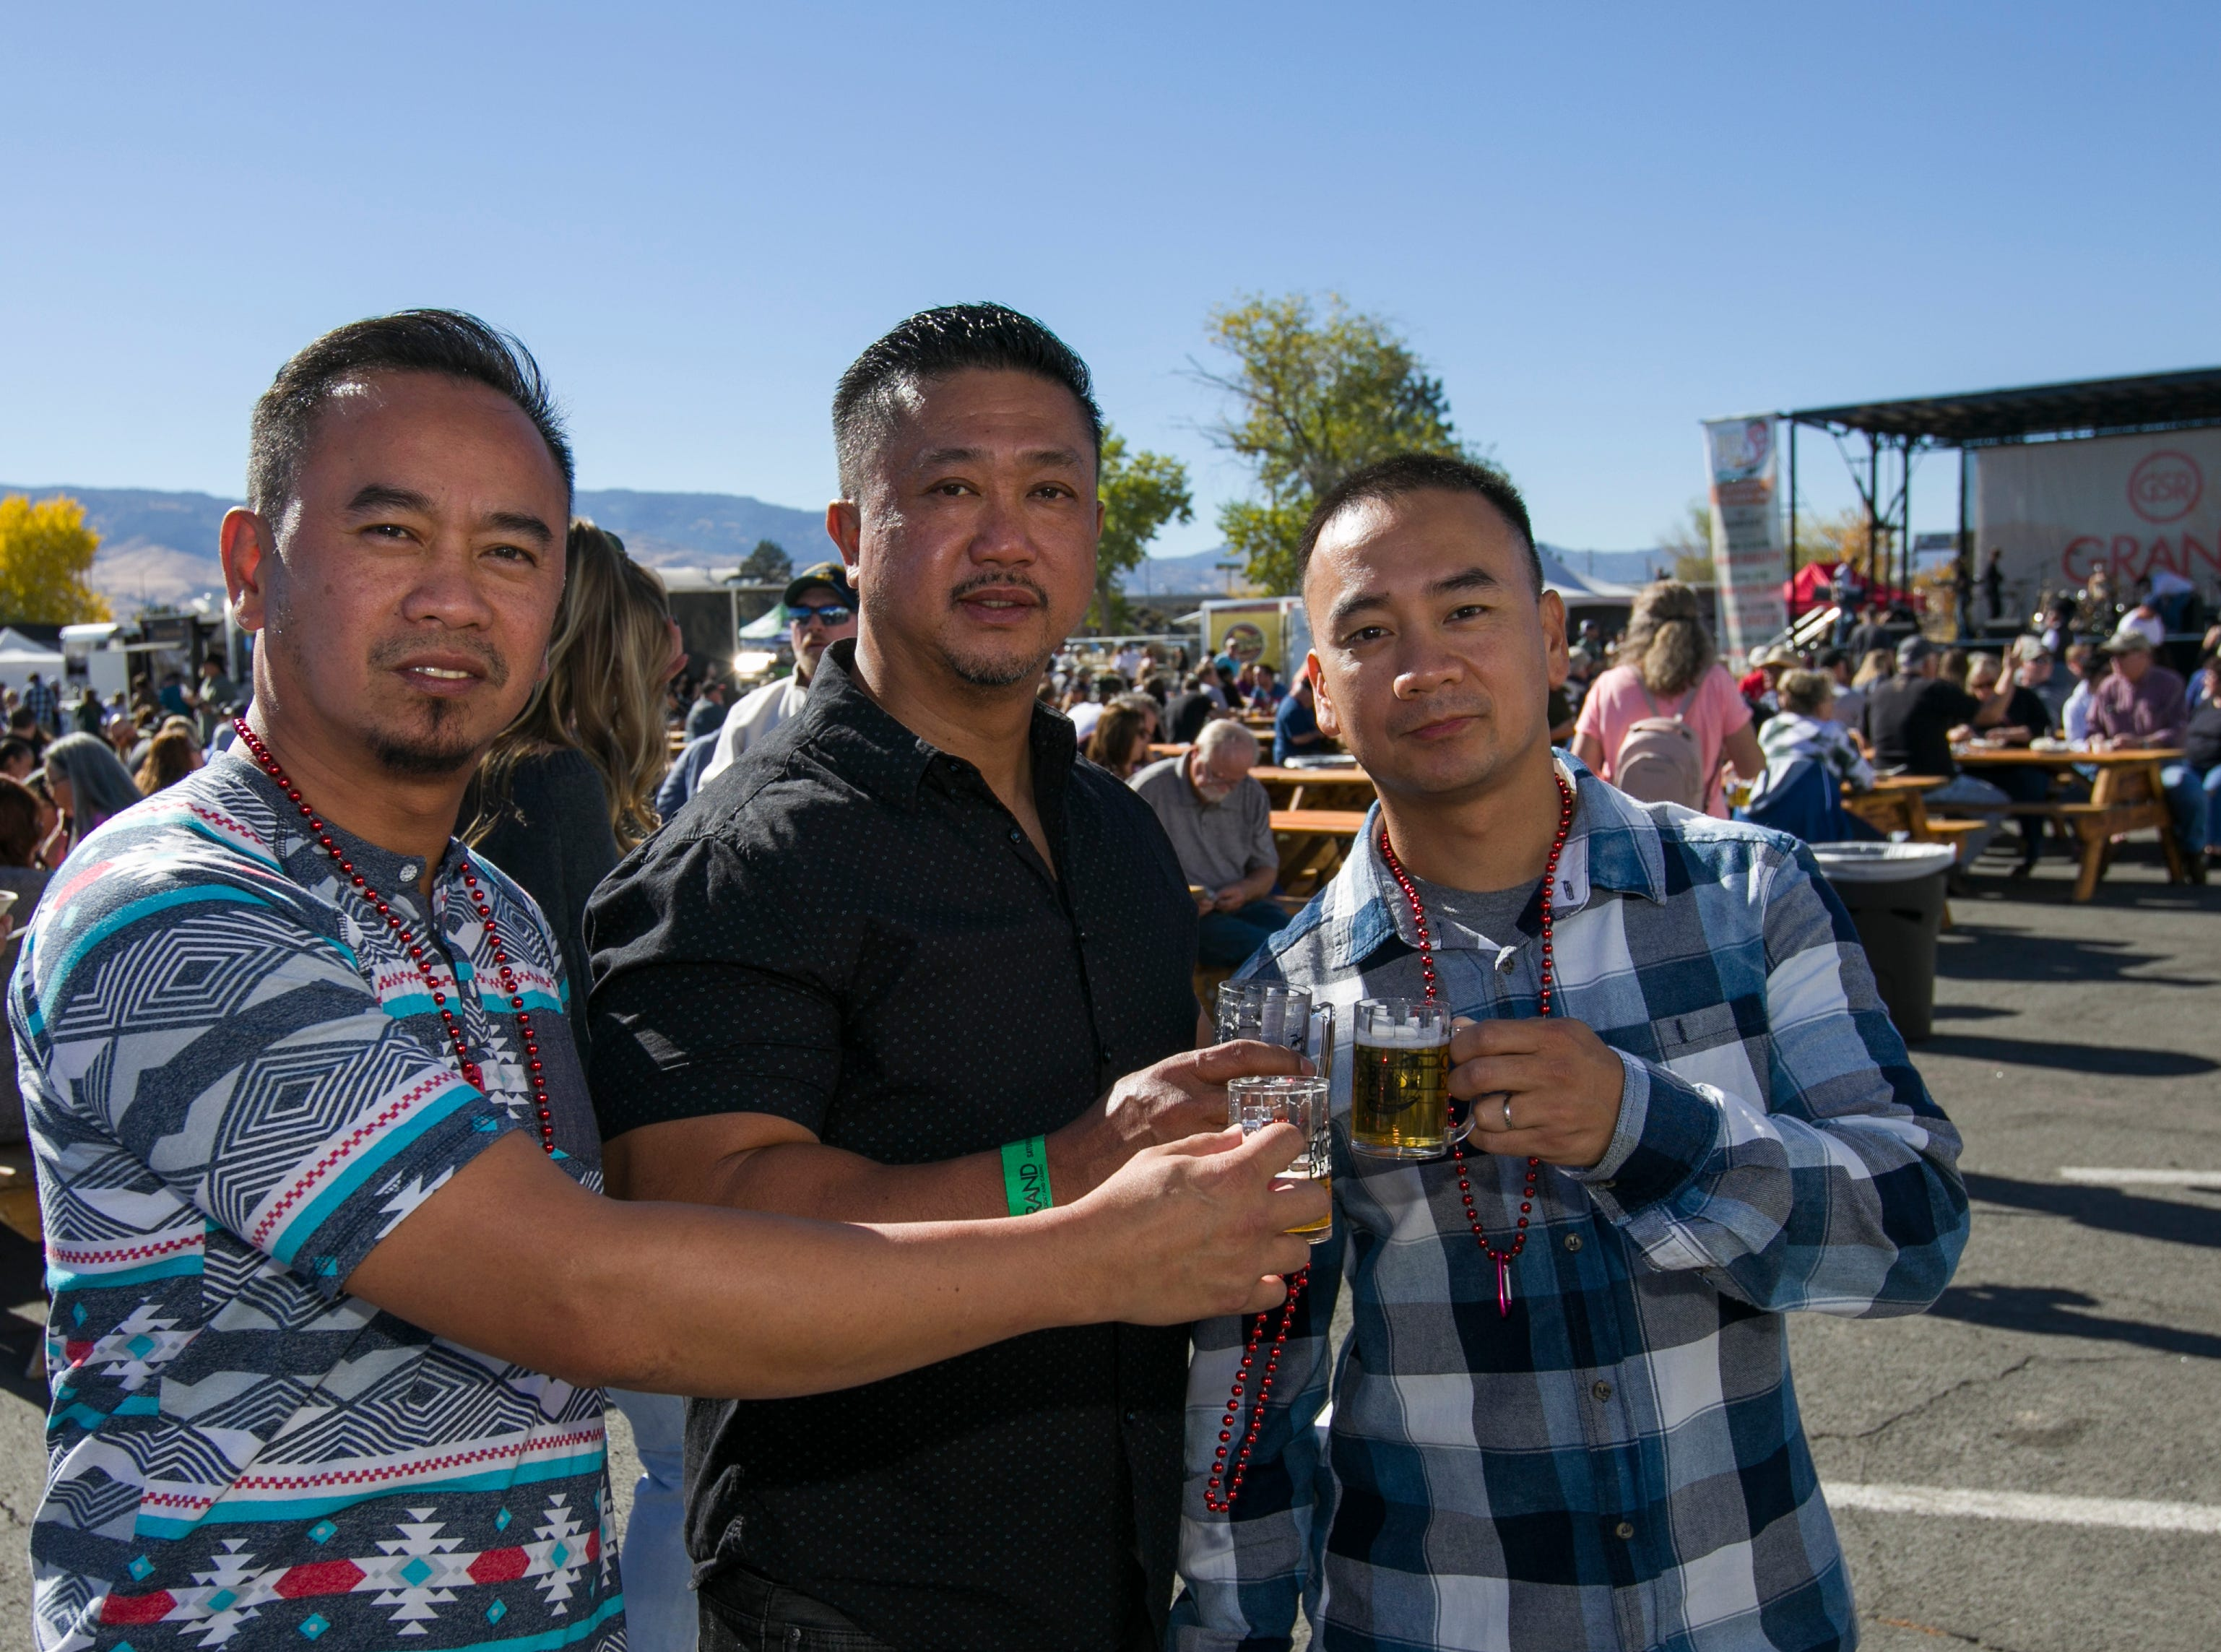 Photos from the Chili Festival at GSR on Oct. 20